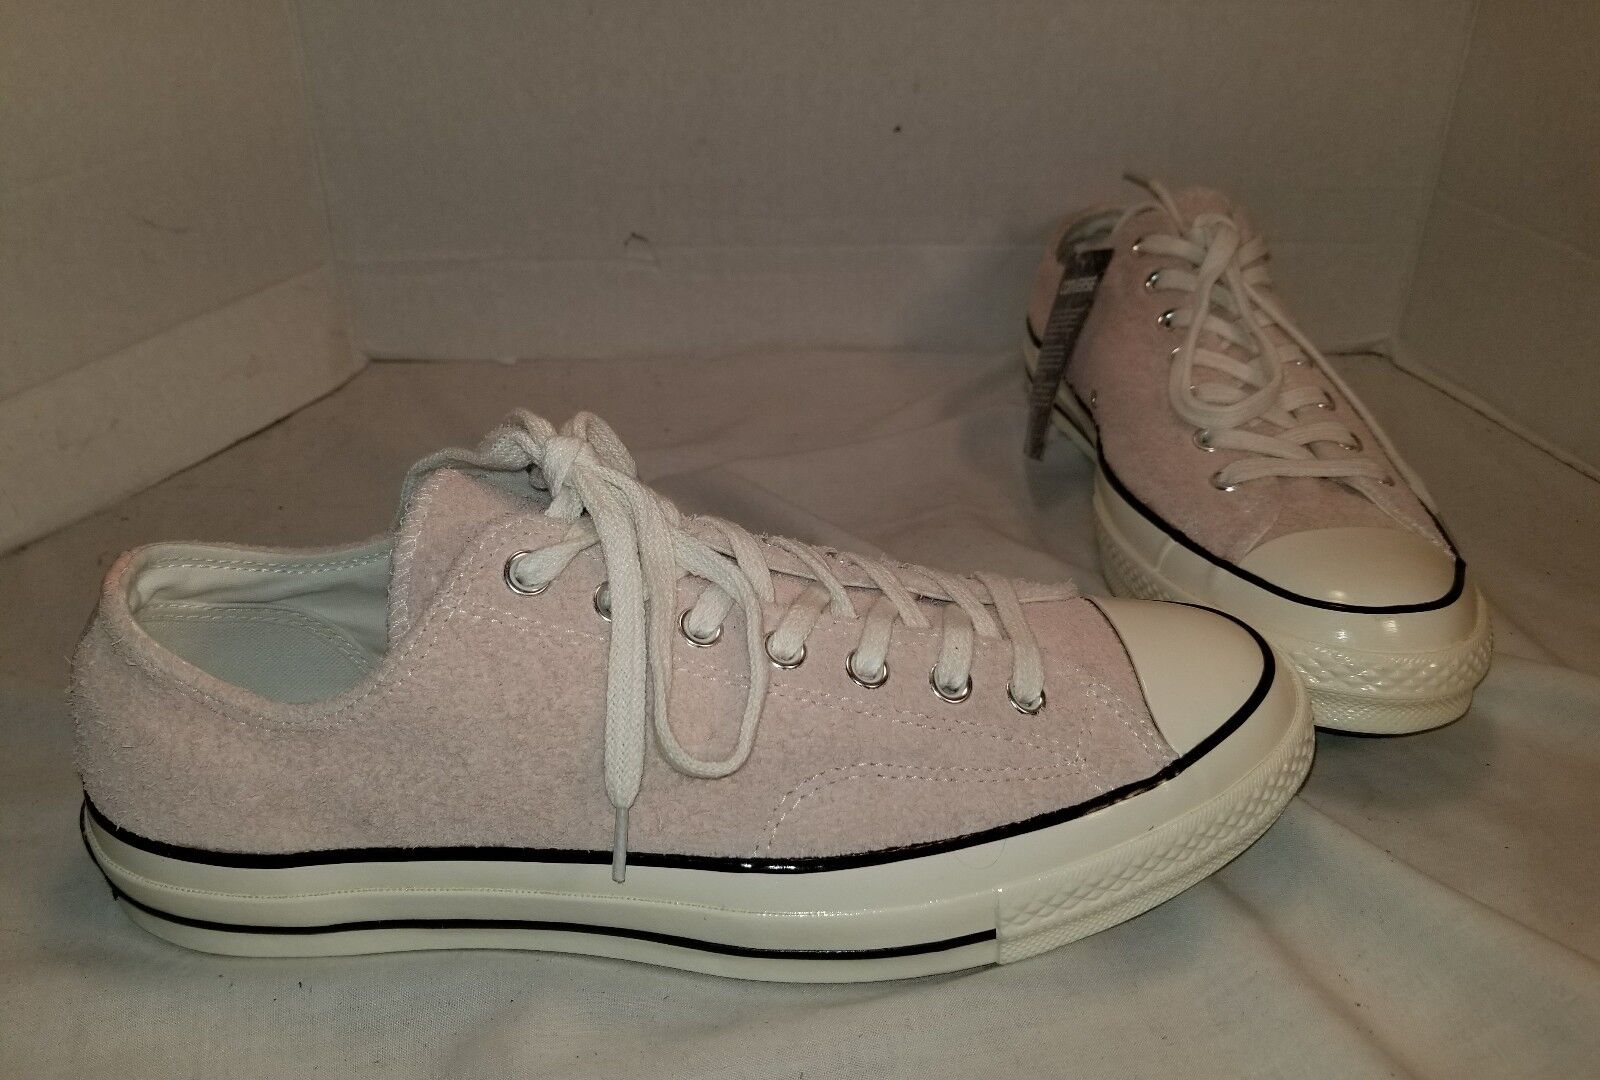 NEW CONVERSE CHUCK TAYLOR ALL STAR '70 DUSK rose SUEDE LO SNEAKERS SIZE hommes 10